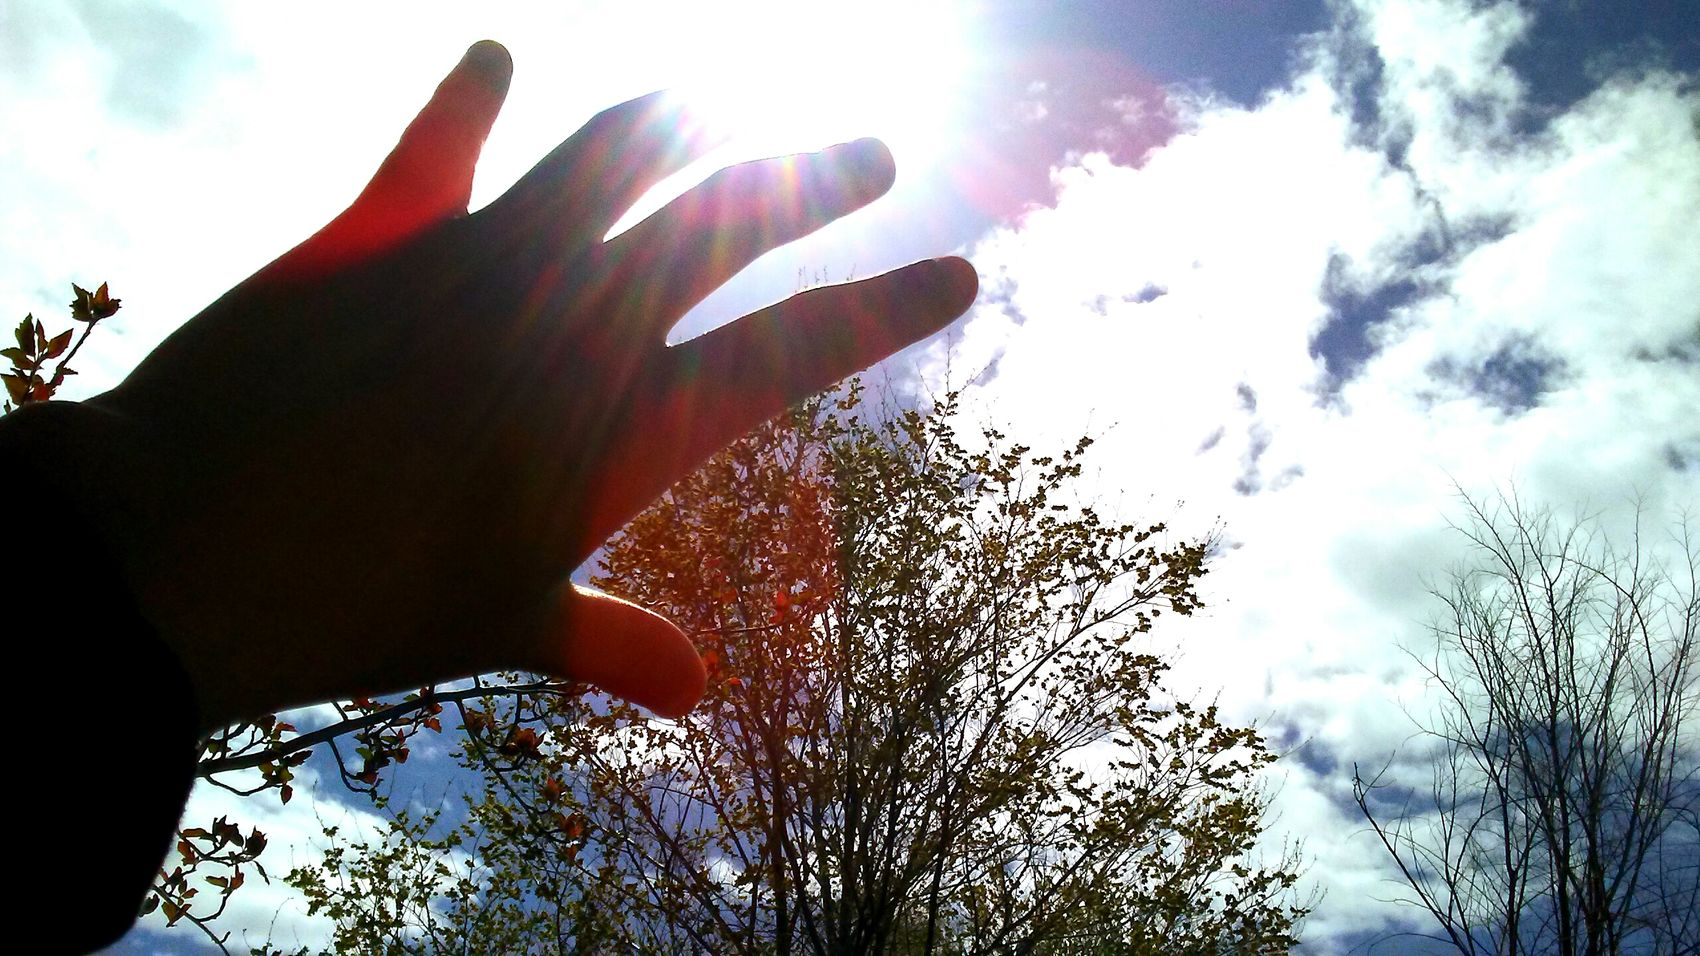 Cloud - Sky Outdoors Sunshine Reaching For The Sky Reaching For The Impossible Day Human Body Part Young Adult Dreamer Adults Only